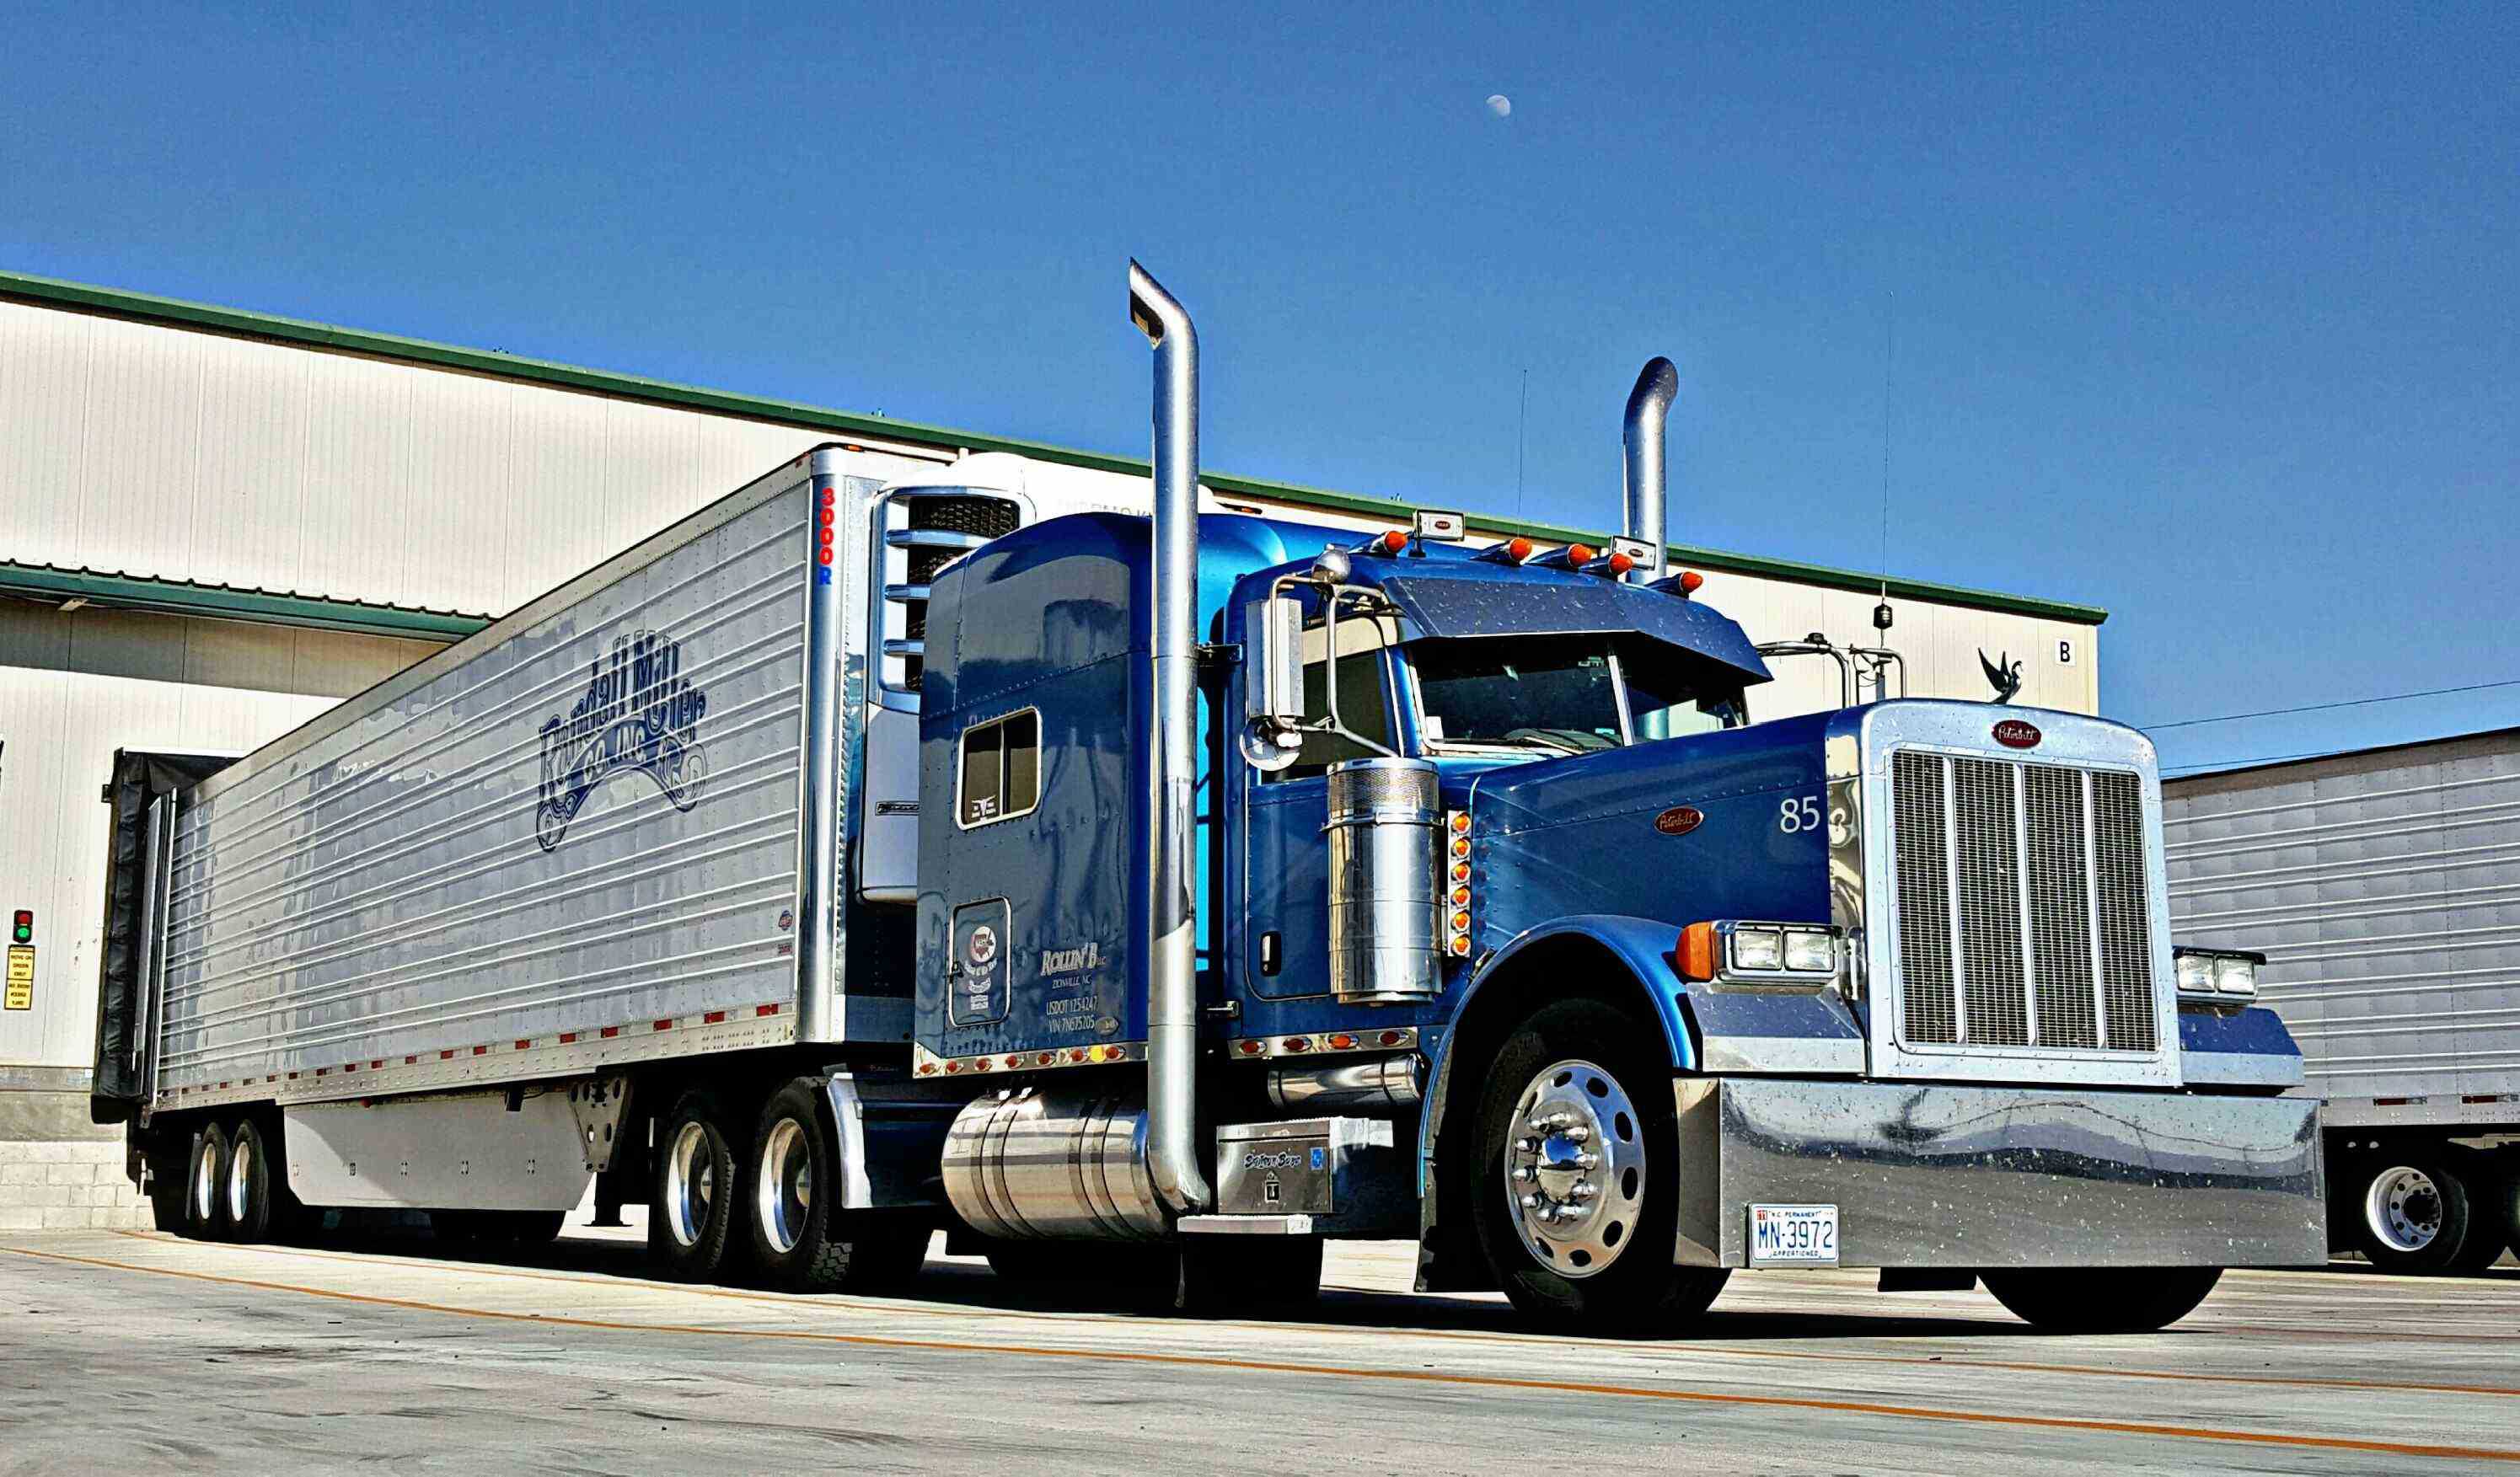 Ingrid Brown's 2007 Peterbilt 379